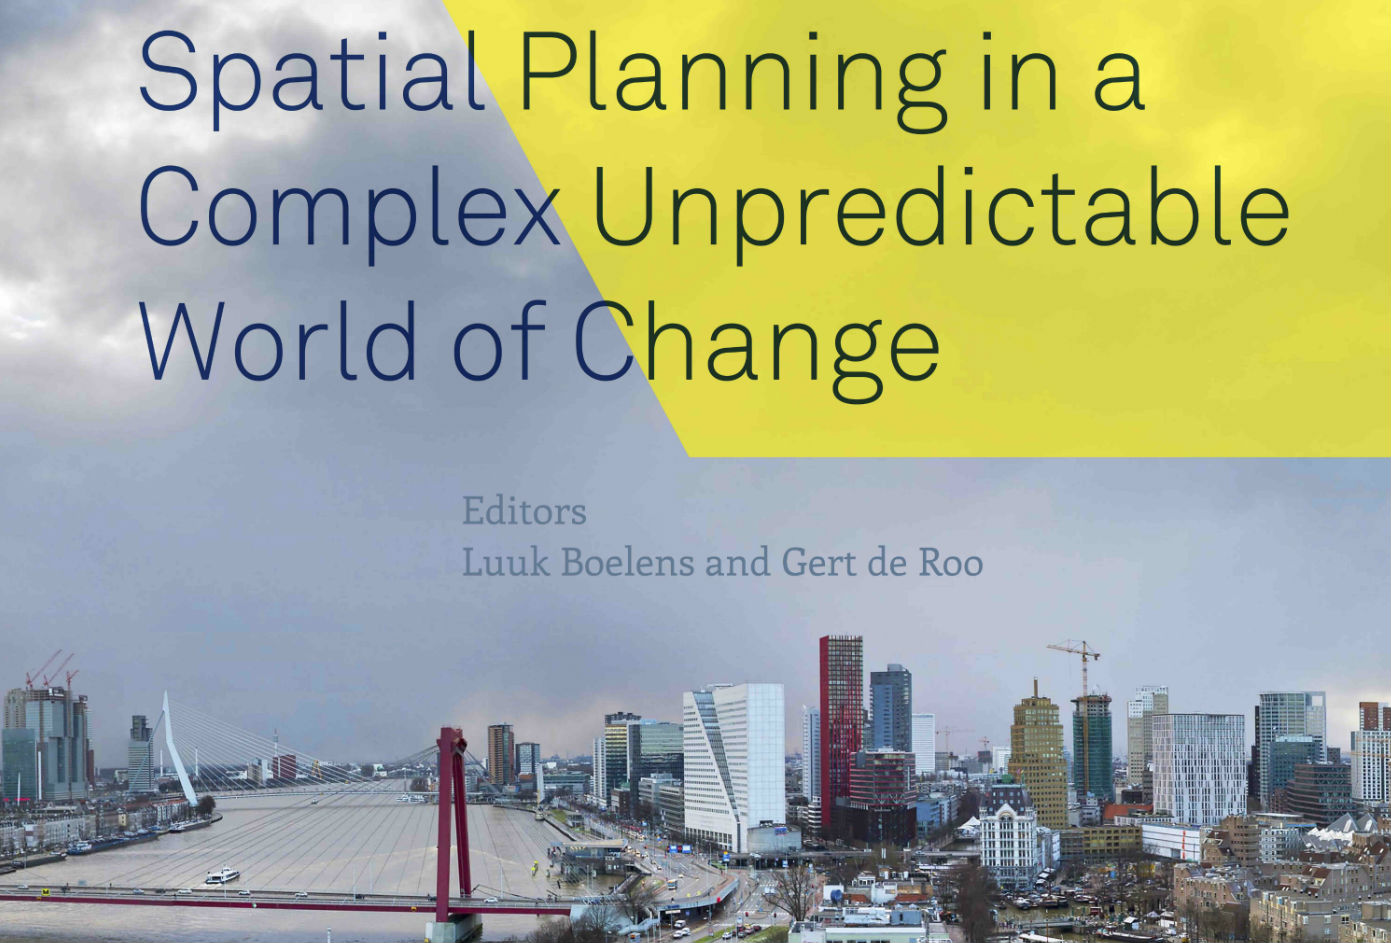 Omslag spatial planning complex cover half